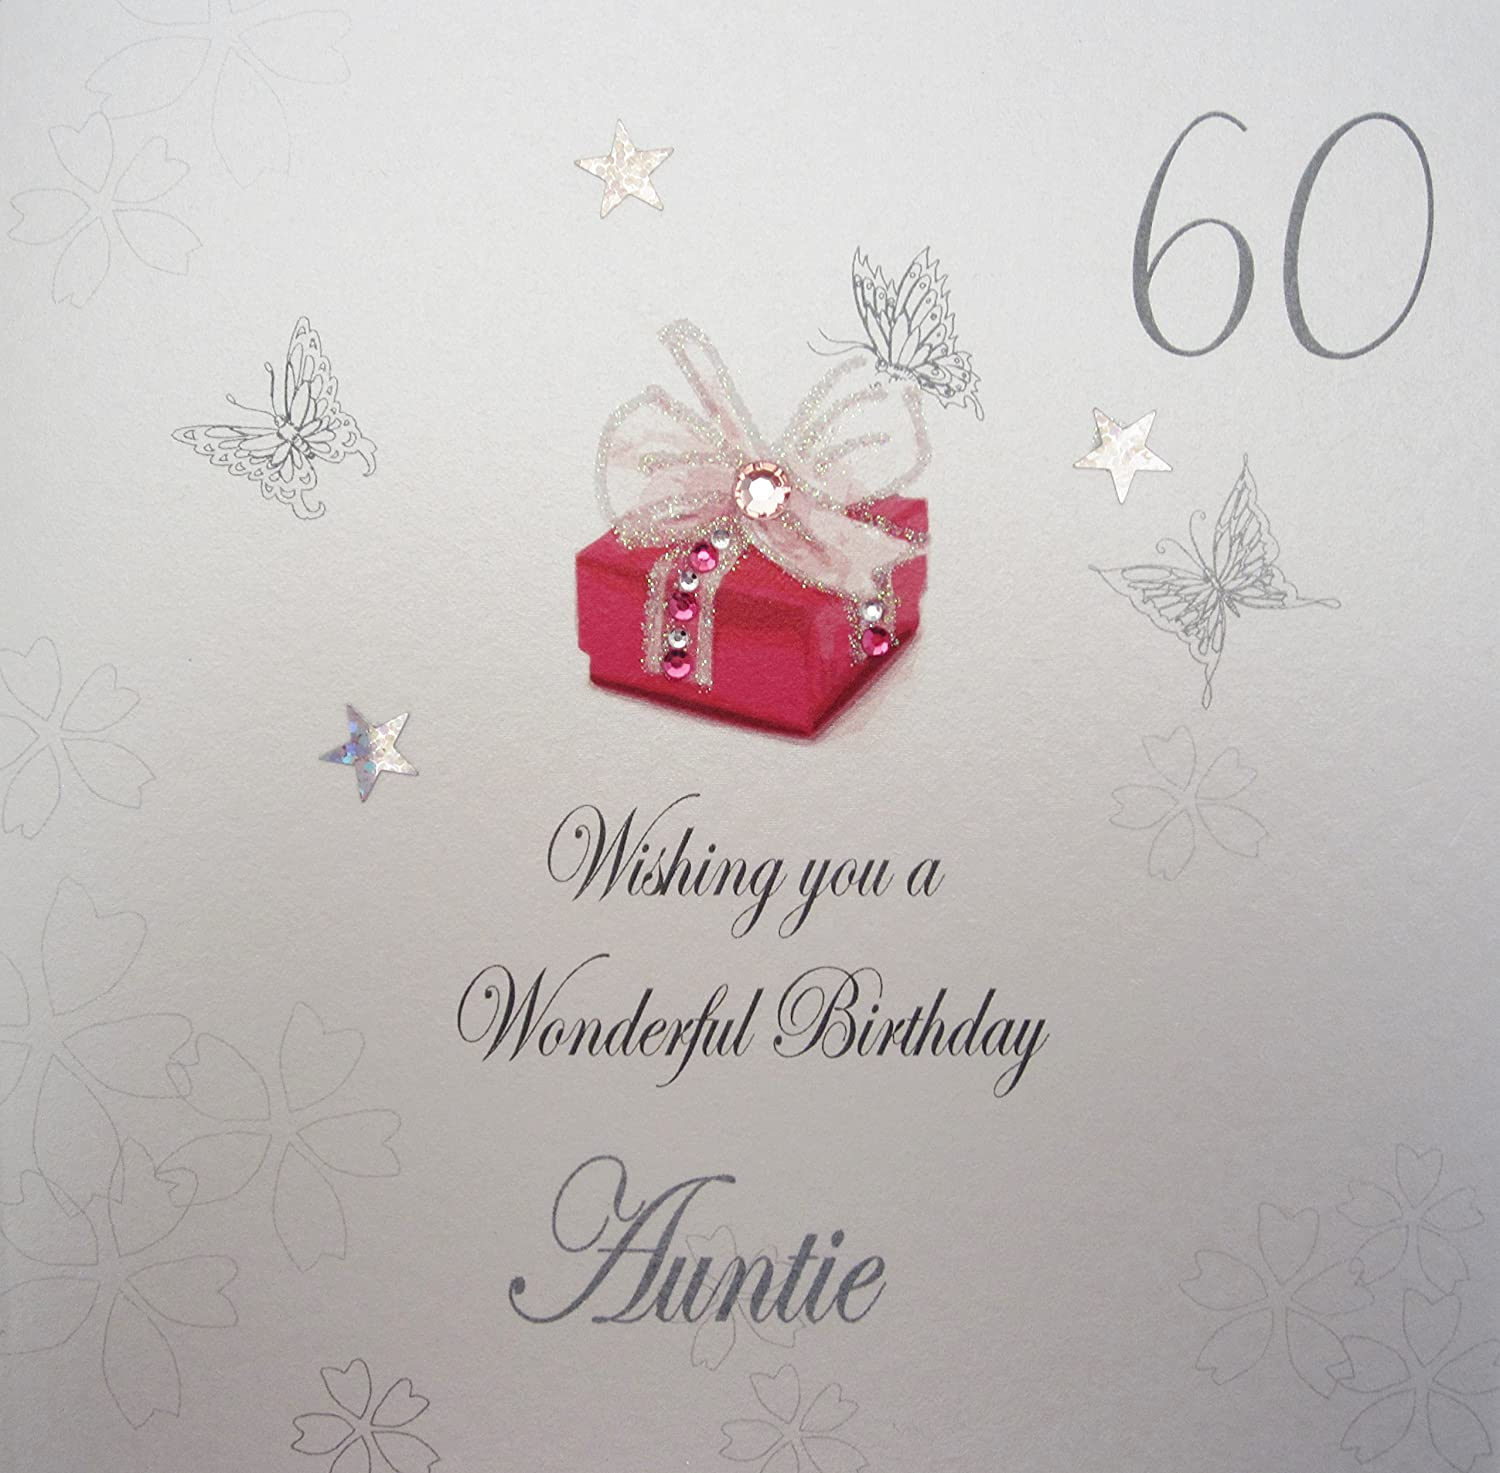 White cotton cards bdp60 a red present wishing you a wonderful white cotton cards bdp60 a red present wishing you a wonderful birthday auntie handmade 60th birthday card white amazon kitchen home kristyandbryce Choice Image